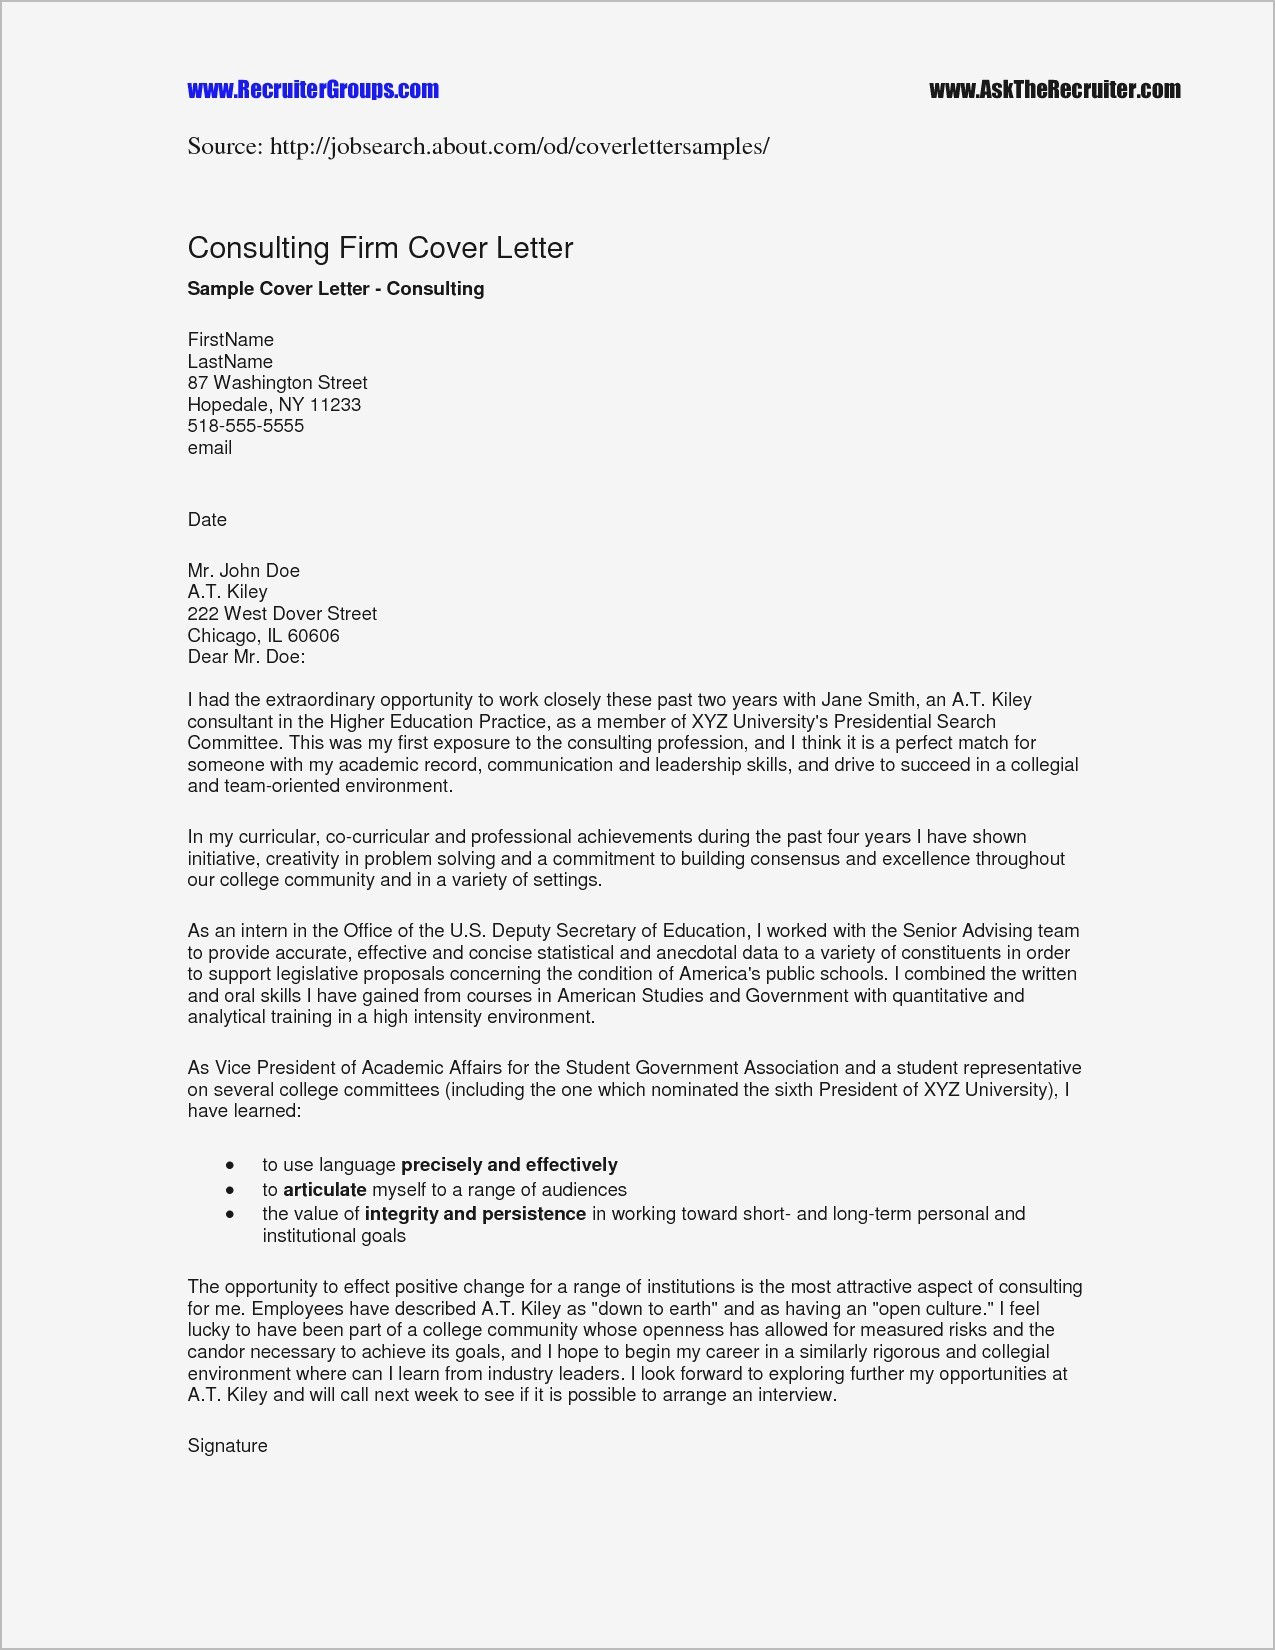 Cover Letter Template Pdf - Job Query Letter Refrence Example Cover Letter for Job Application